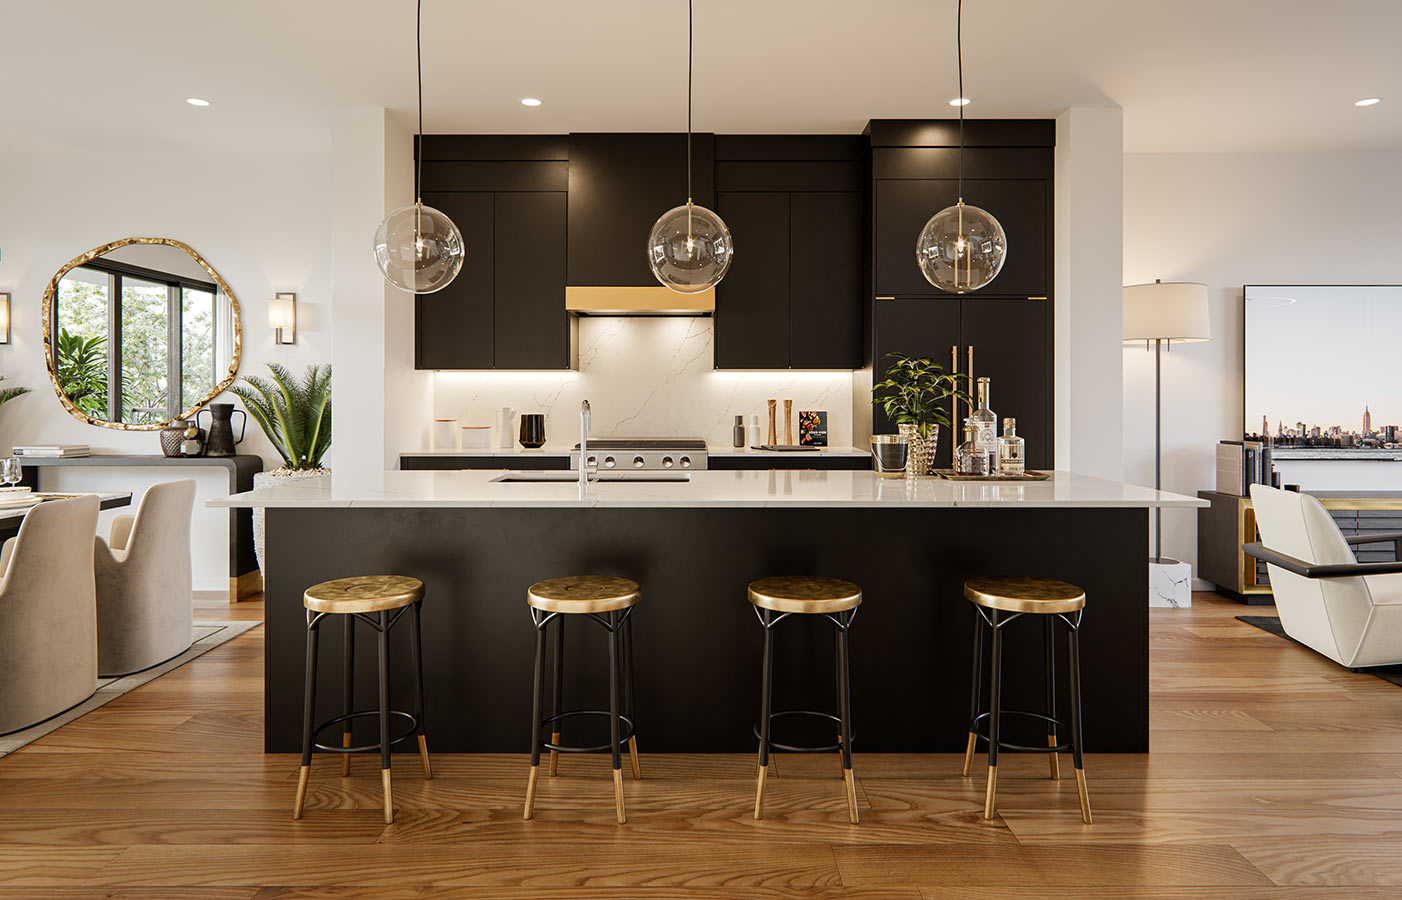 Black kitchen with white countertops, white marble tile and gold accents.